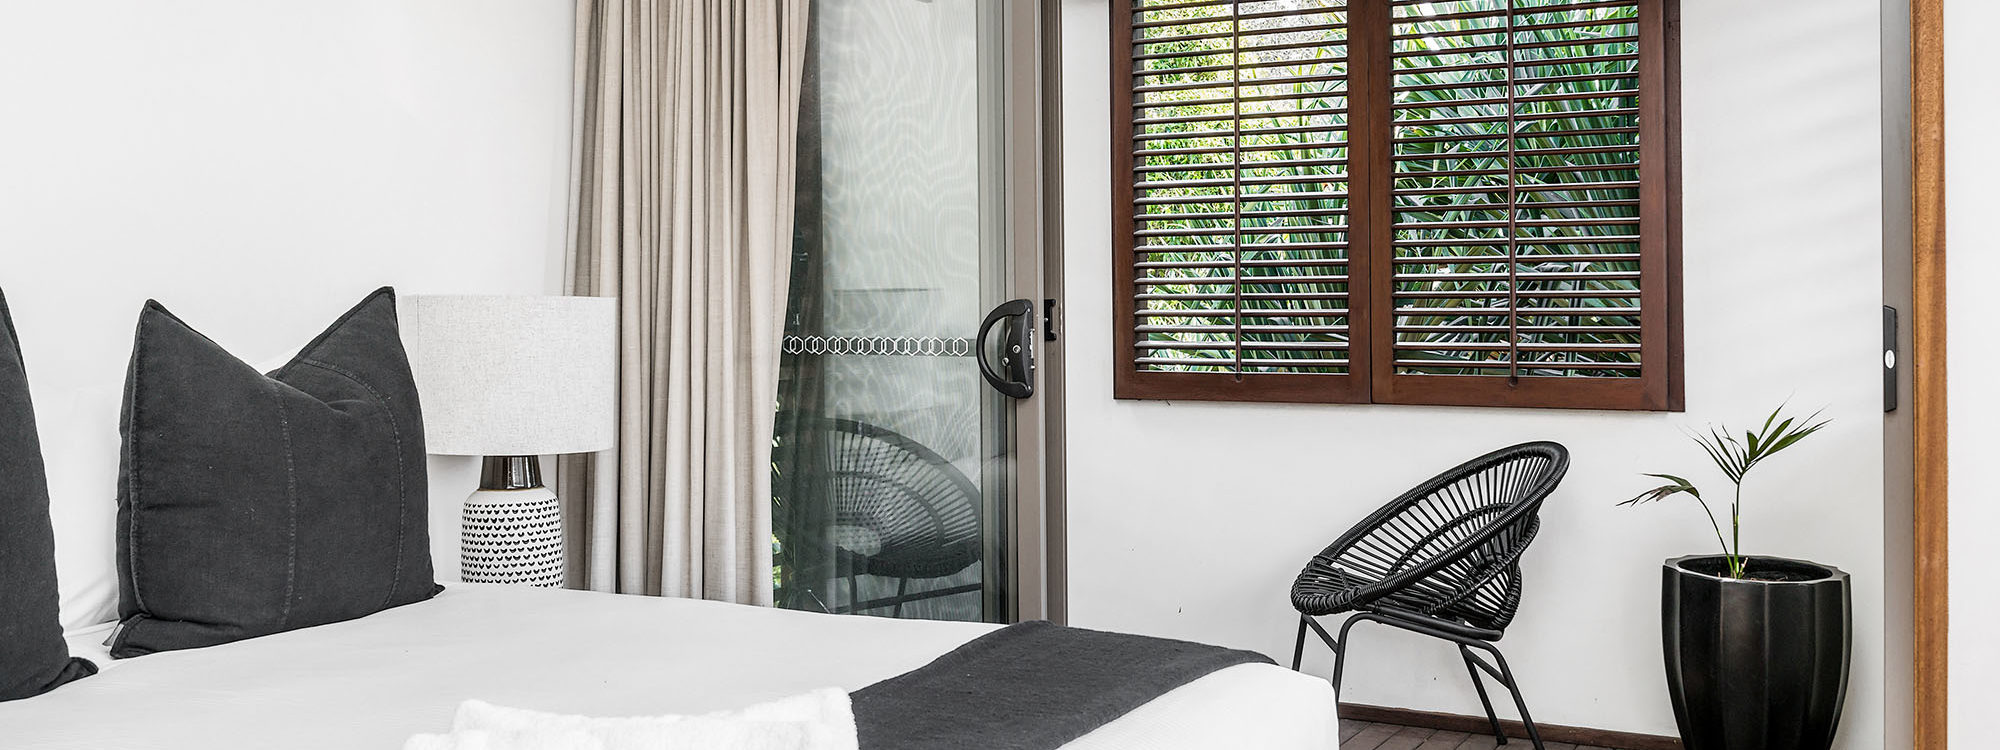 Bahari - Byron Bay - Bedroom 3b